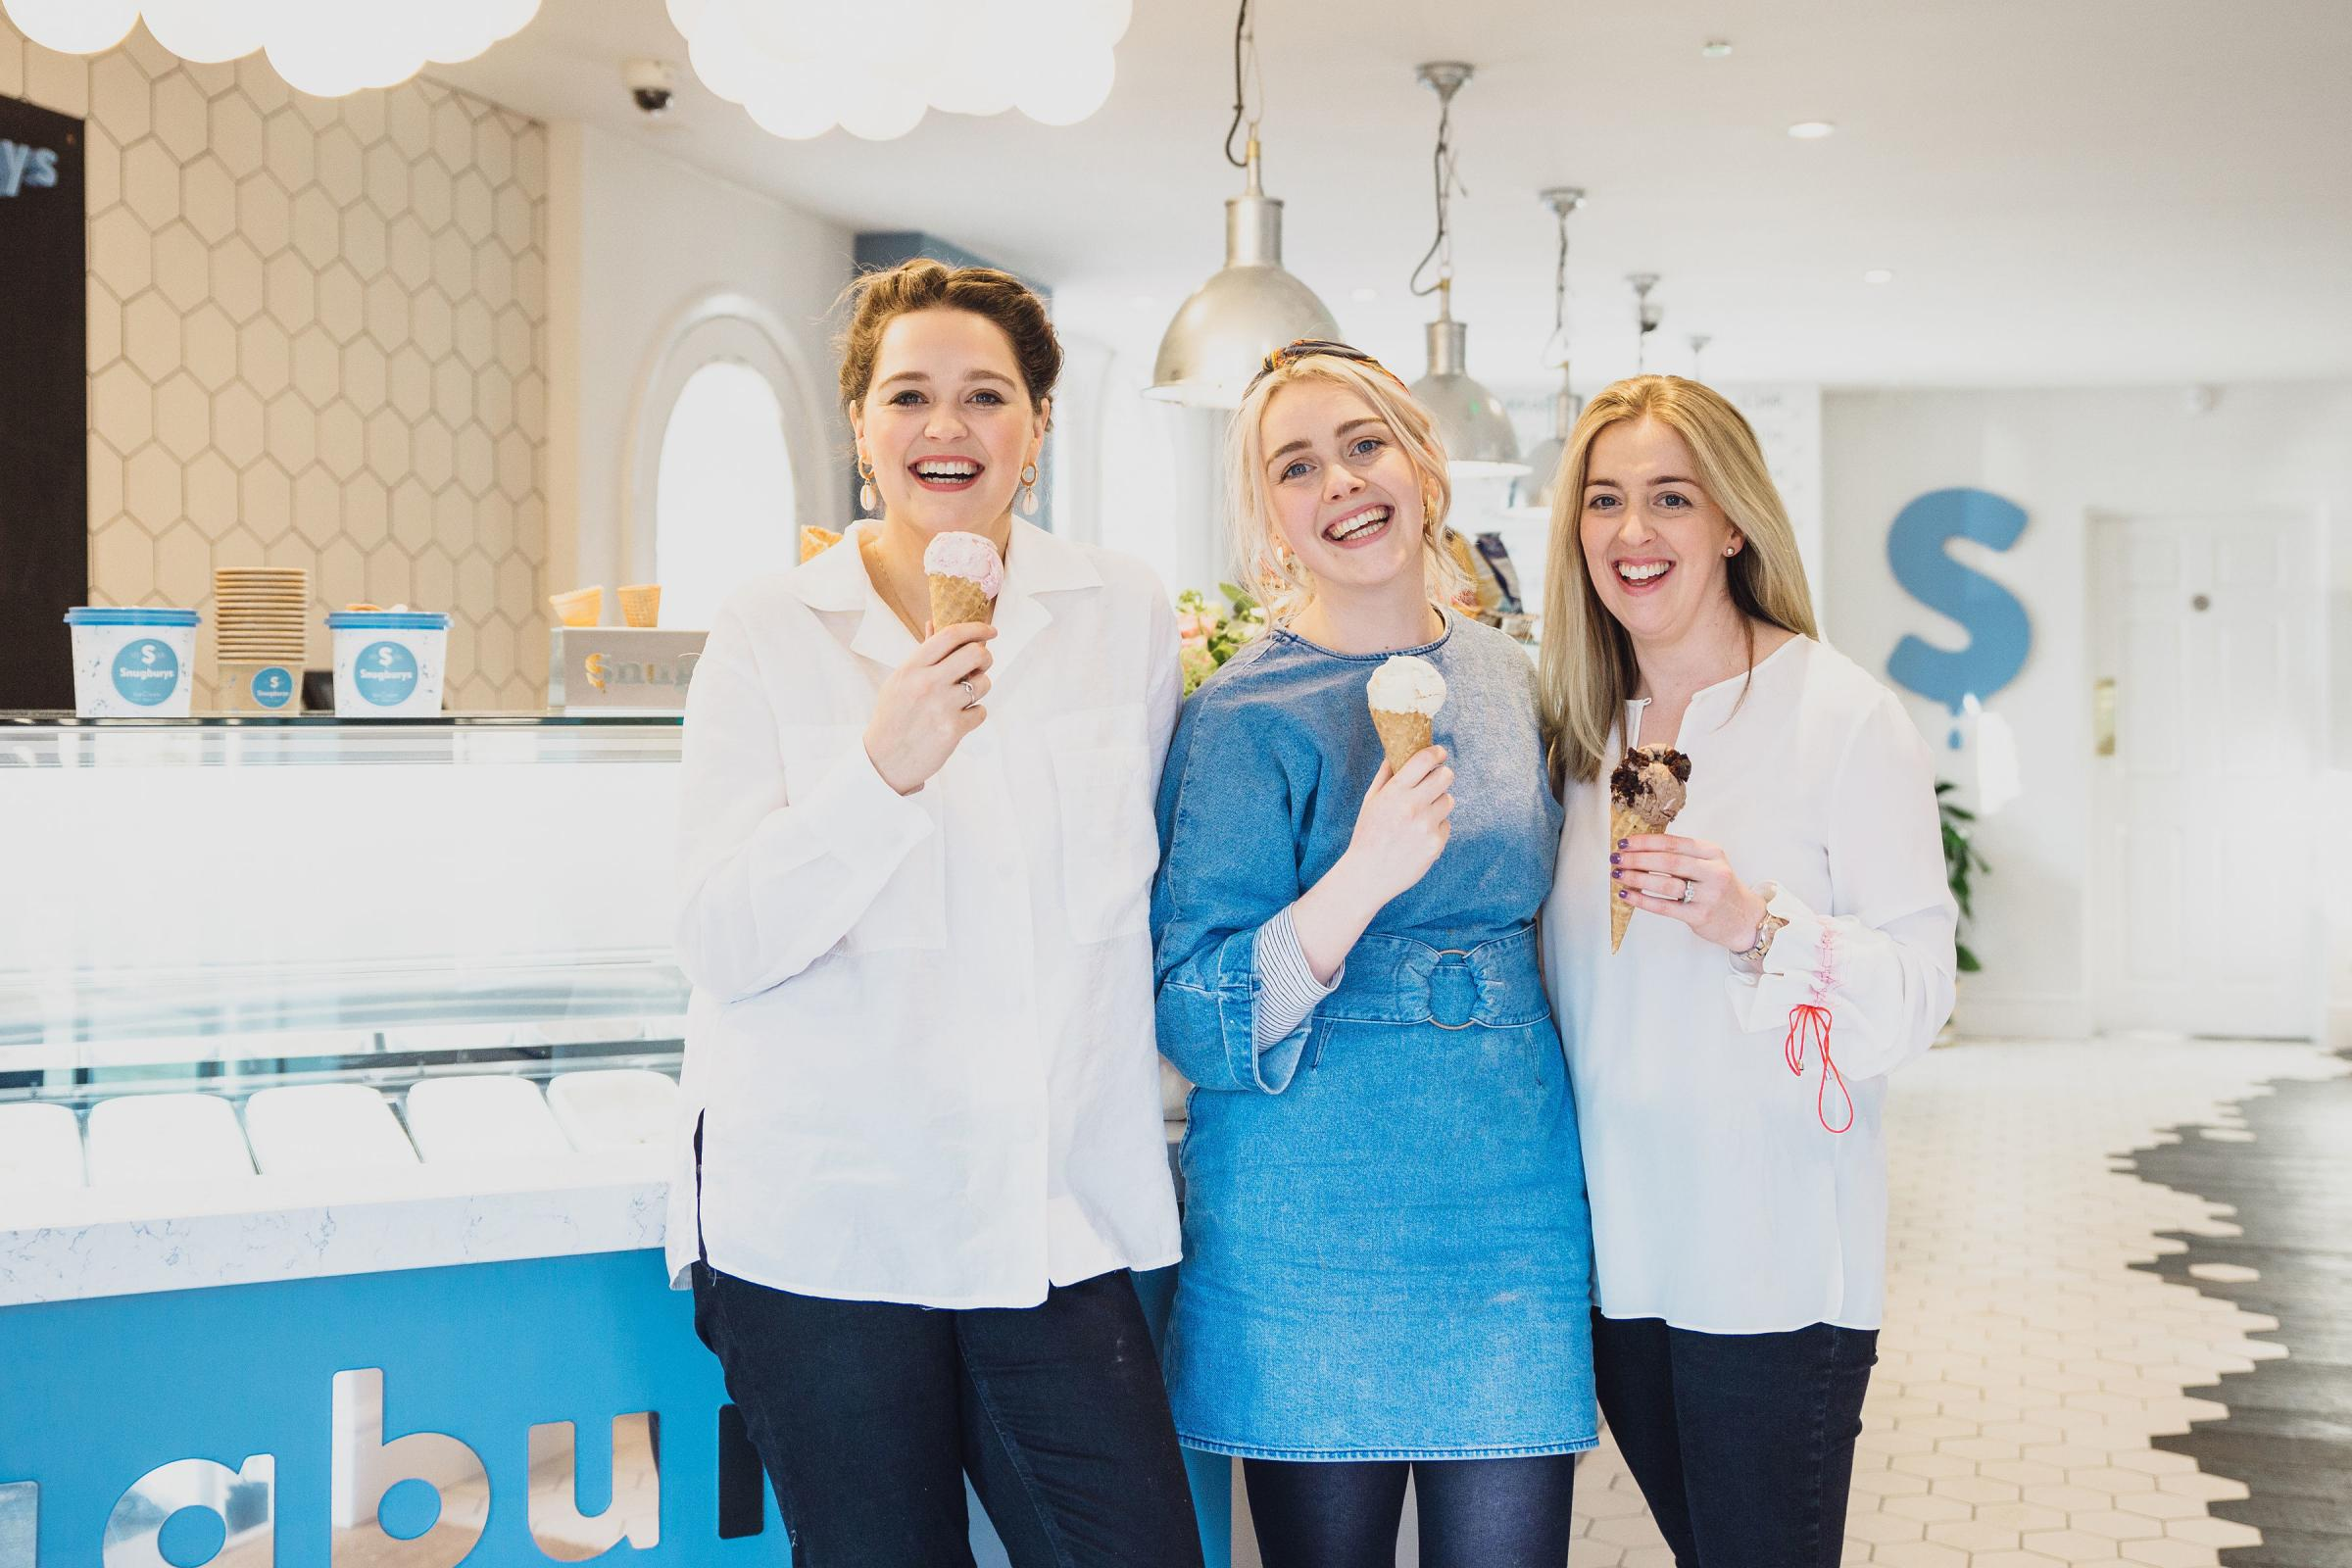 Customers will get a free ice cream at Snugburys cafe in Chester to mark its first birthday